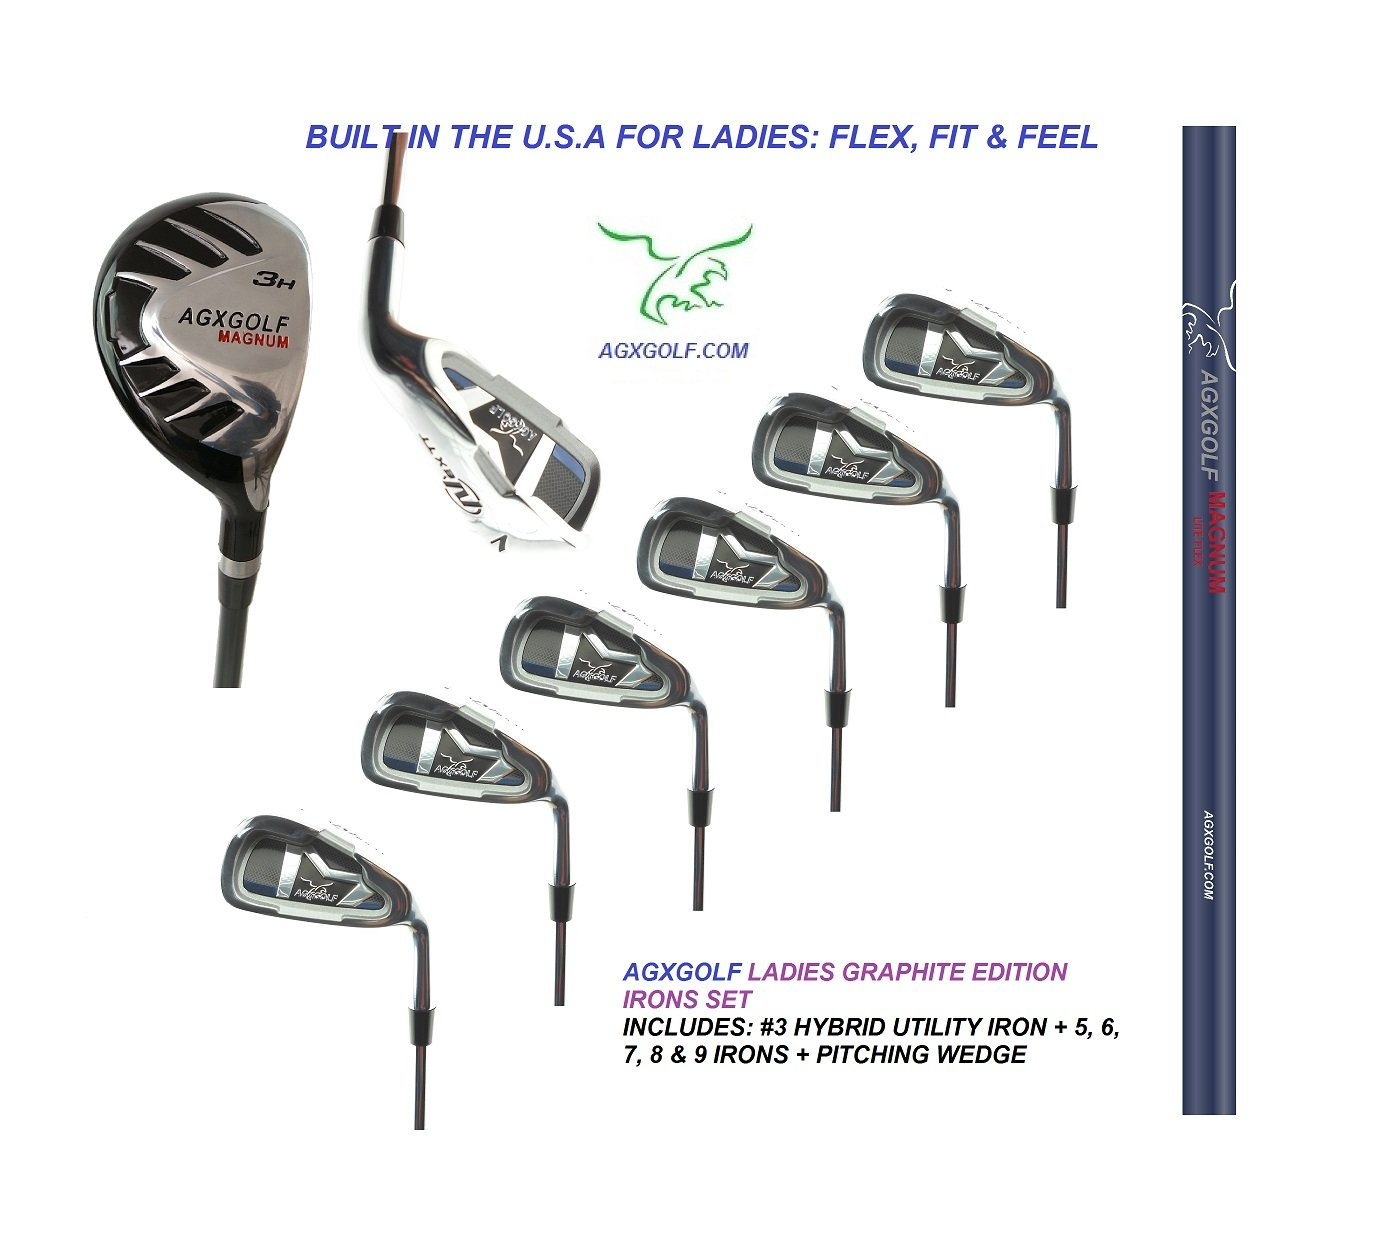 AGXGOLF Ladies, Right-Hand Magnum Graphite Iron Set #3 Hybrid + 5-9 Irons + Pitching Wedge; Petite, Regular & Tall Lengths: Built in The USA ! by AGXGOLF